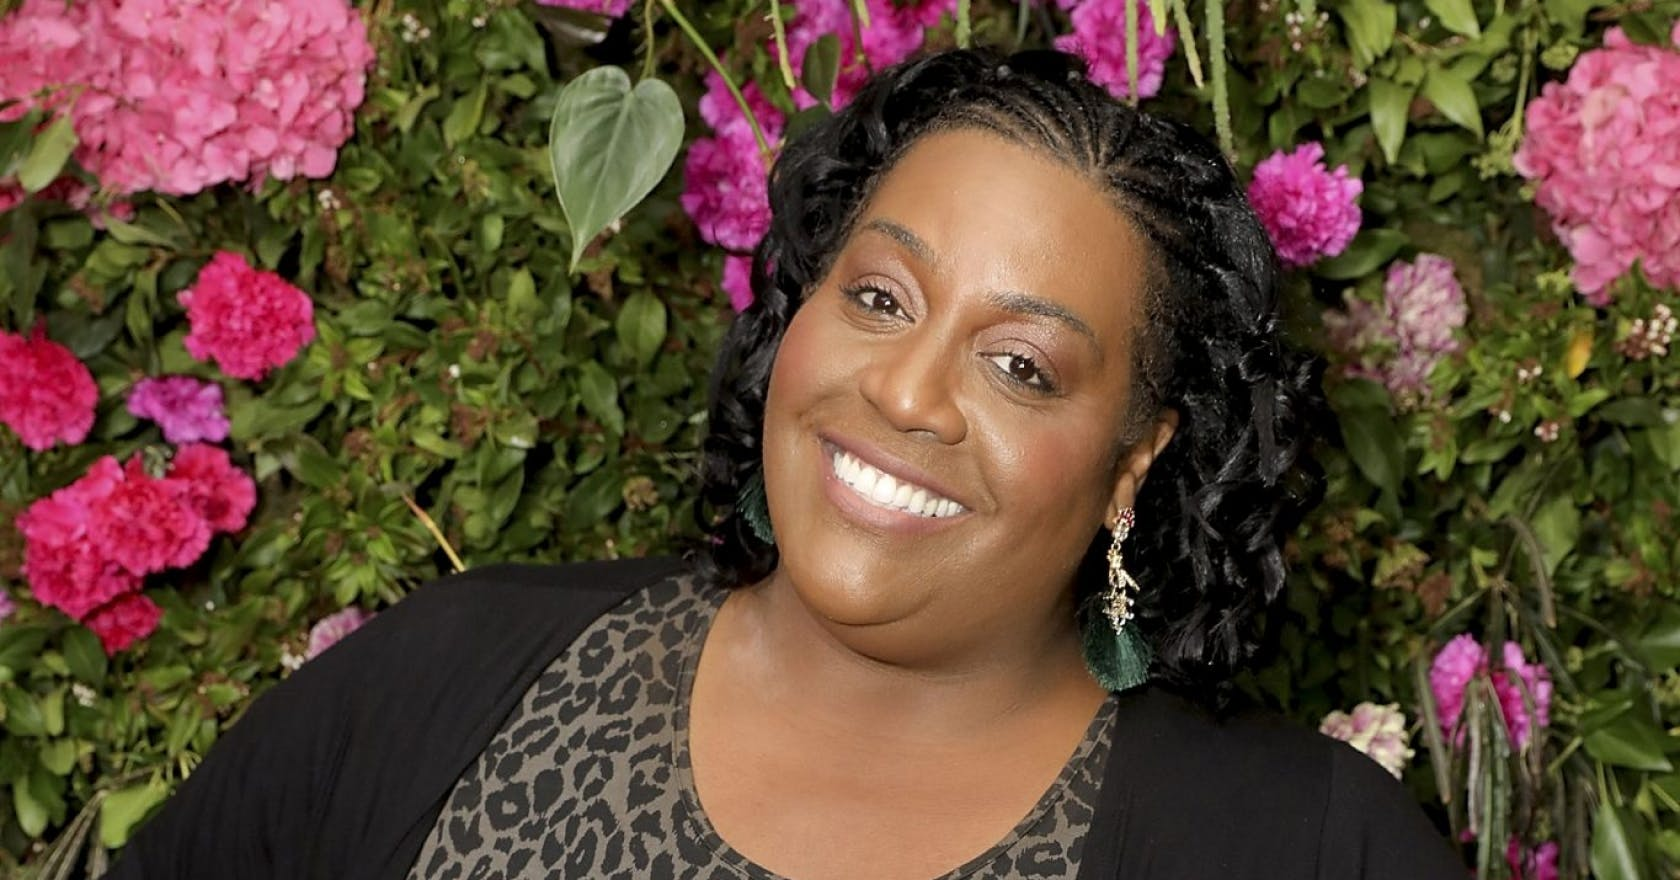 Why this viral video of Alison Hammond matters so much